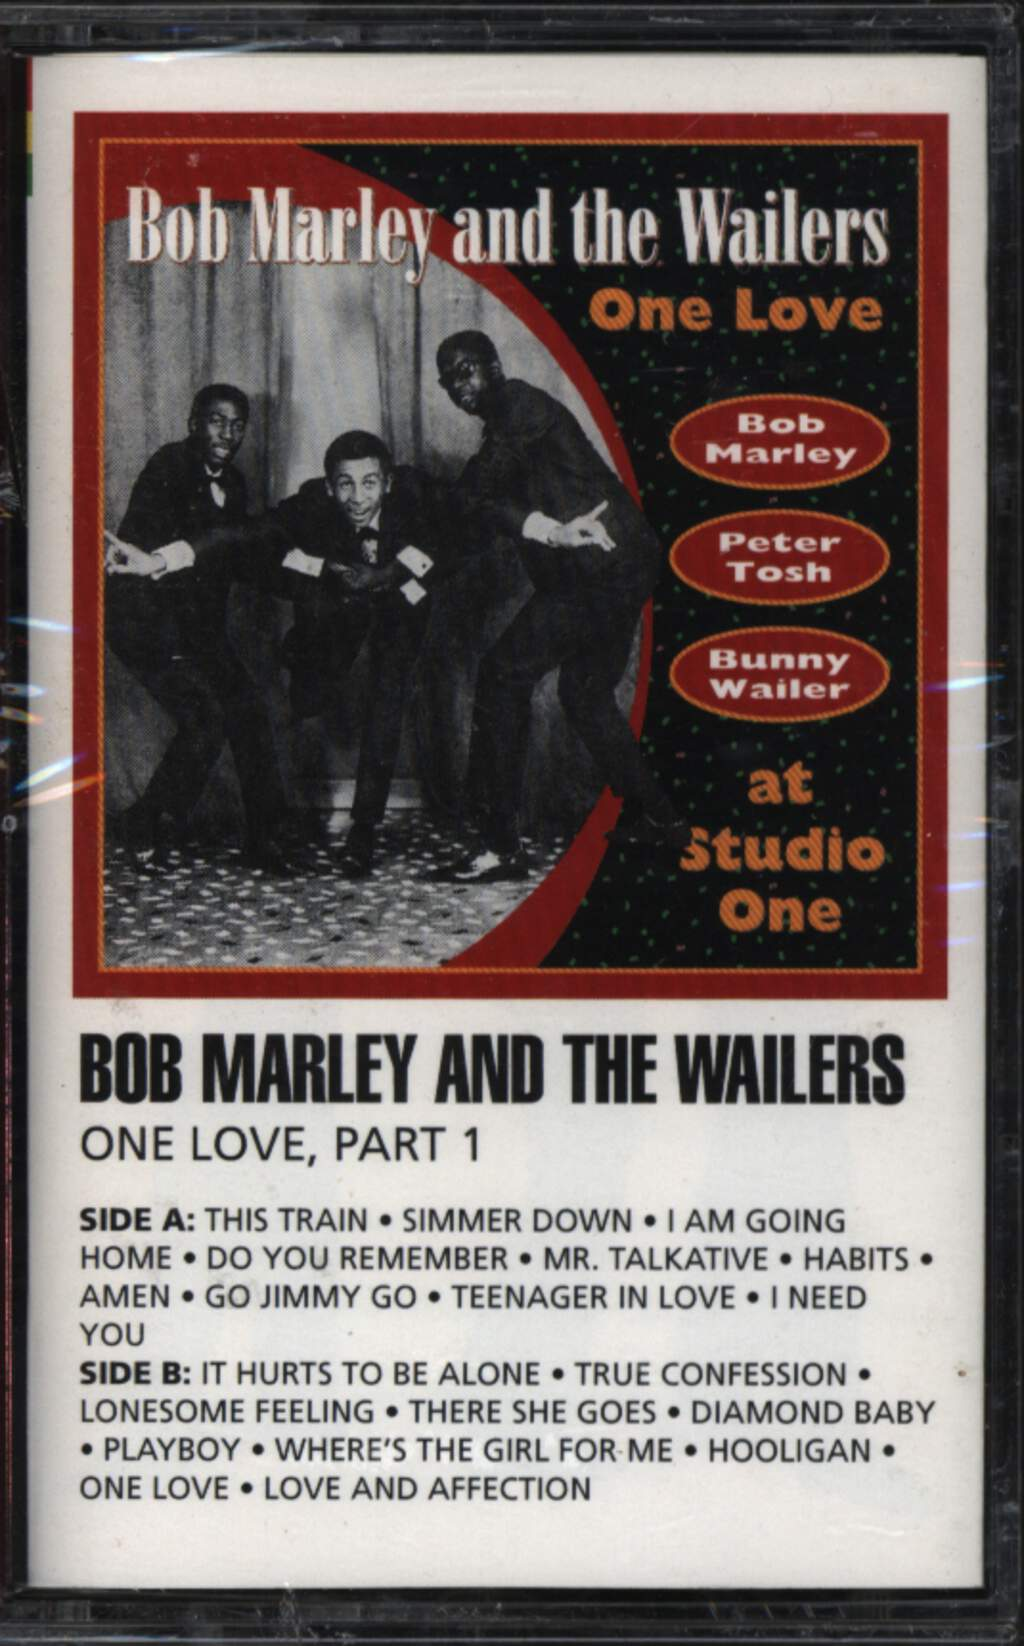 Bob Marley & The Wailers: One Love, Part 1, Compact Cassette